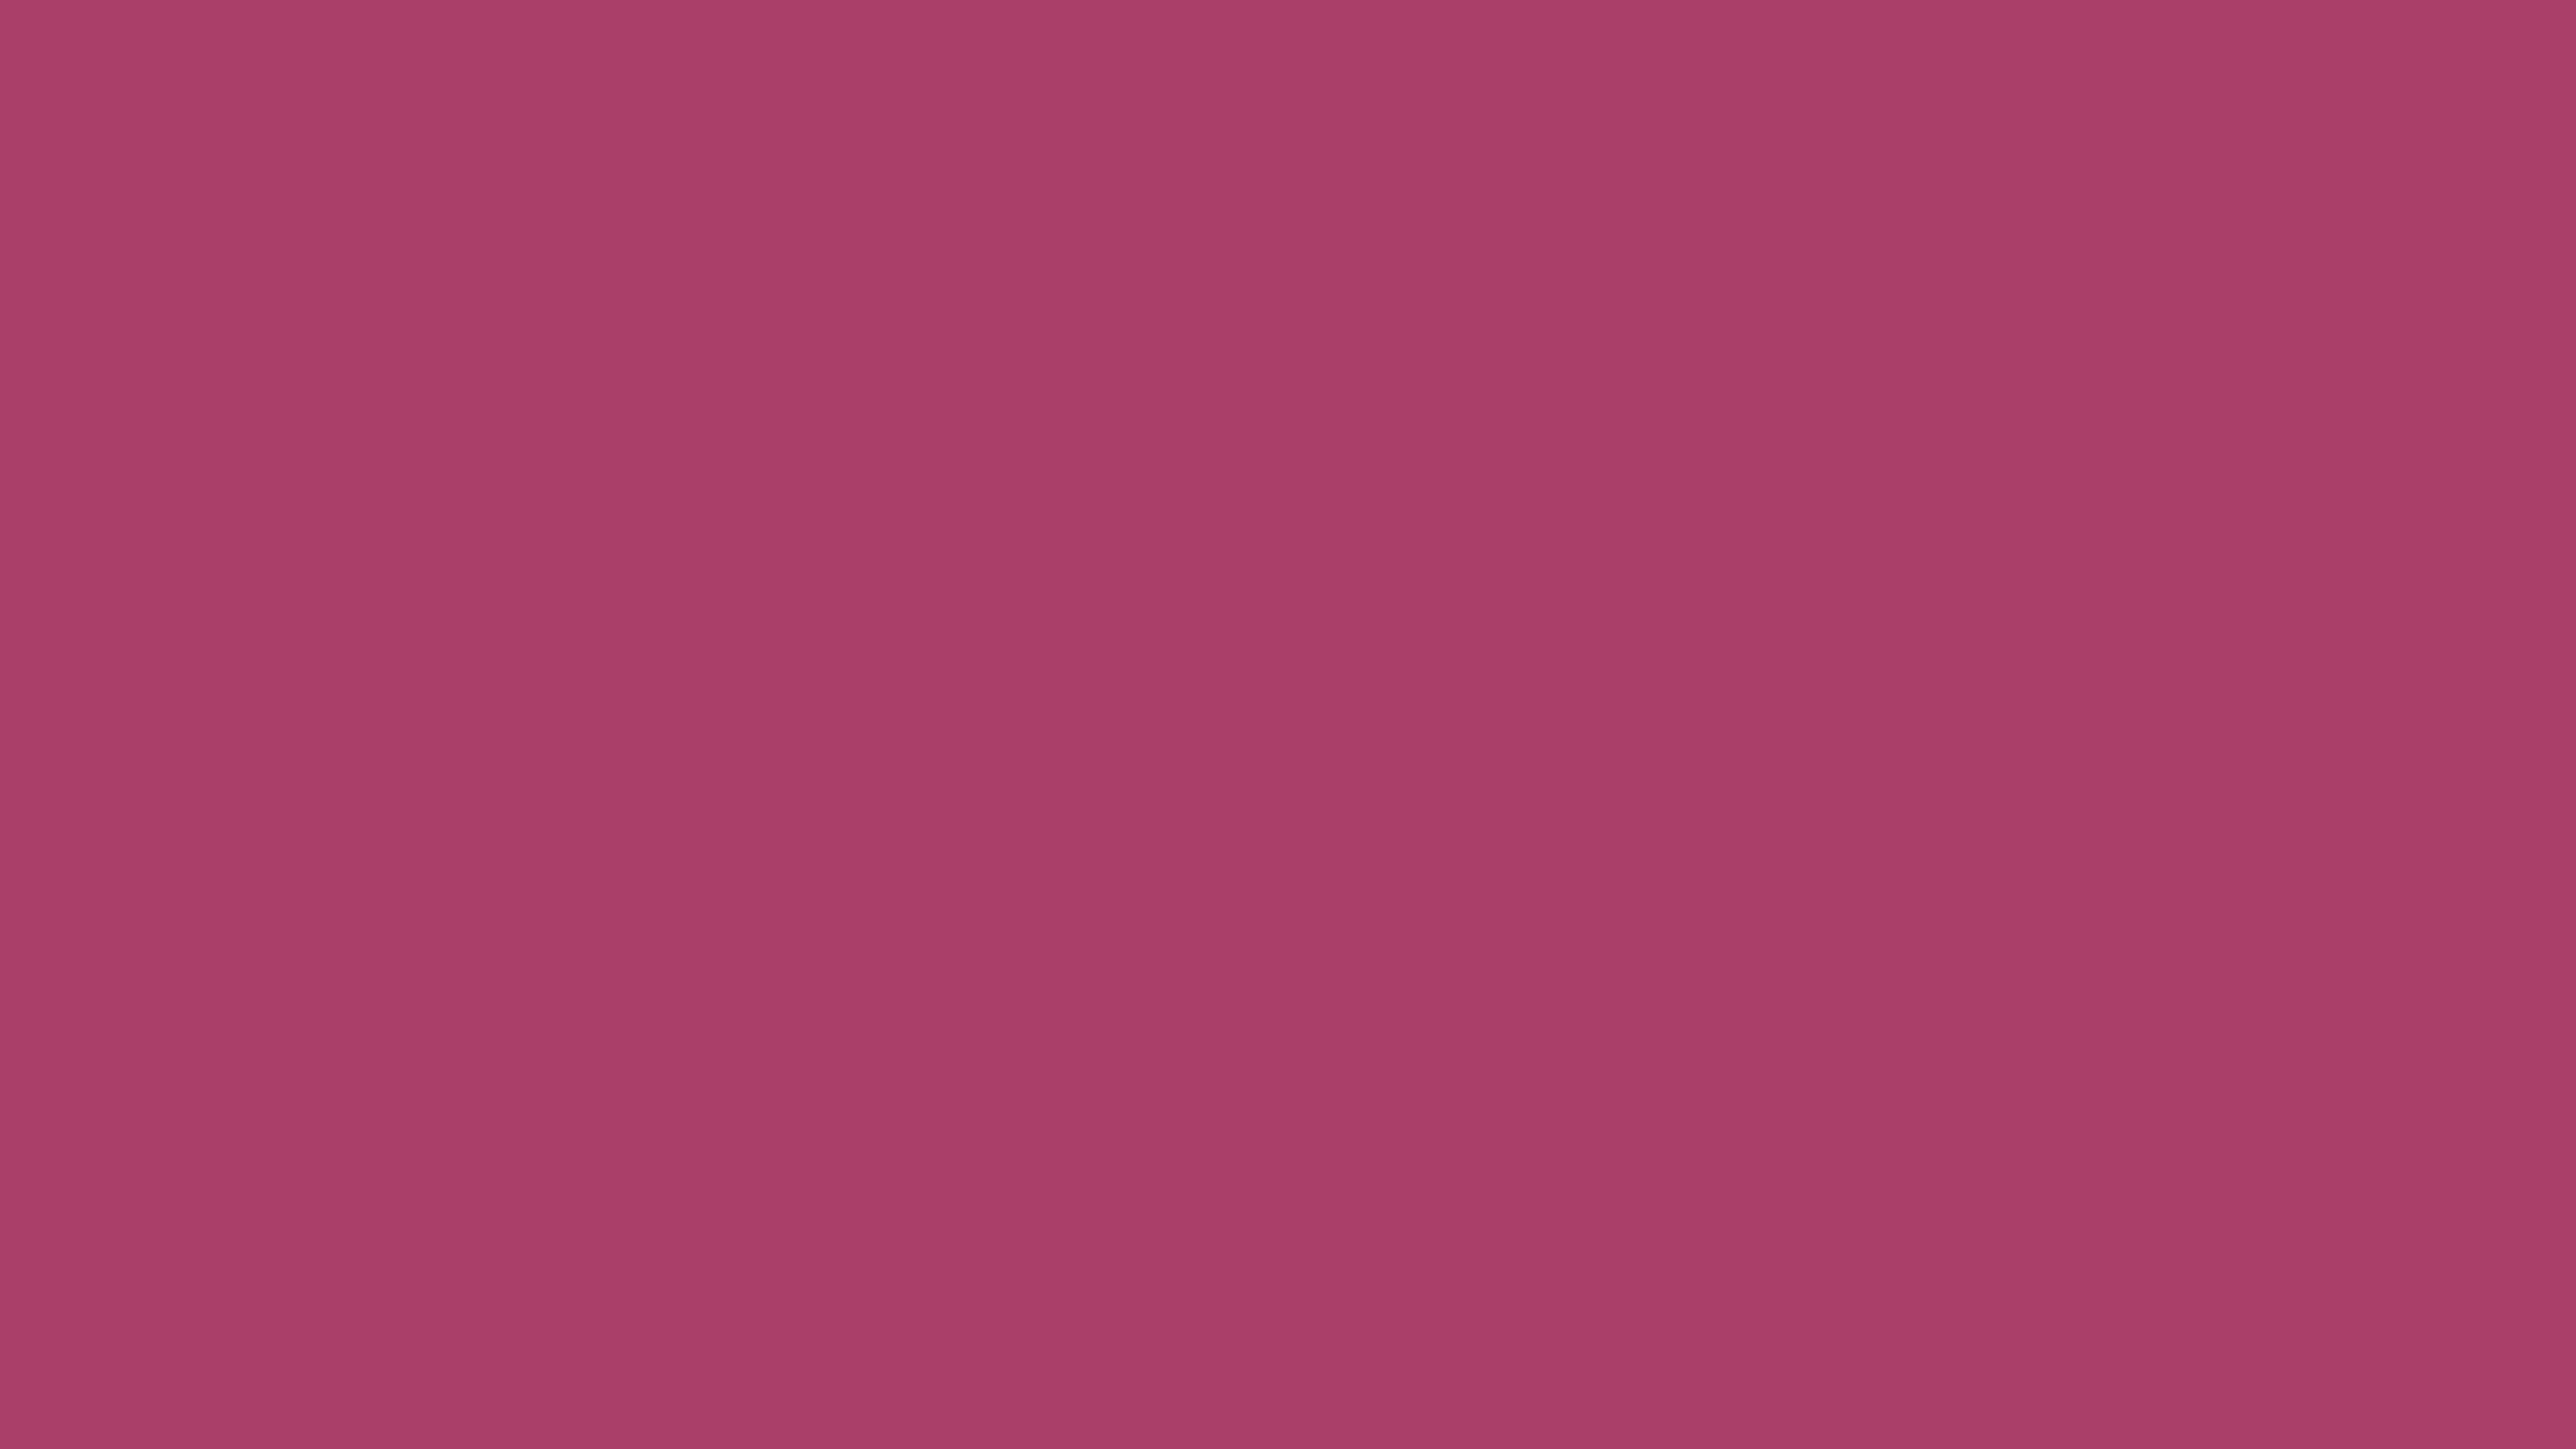 3840x2160 Medium Ruby Solid Color Background